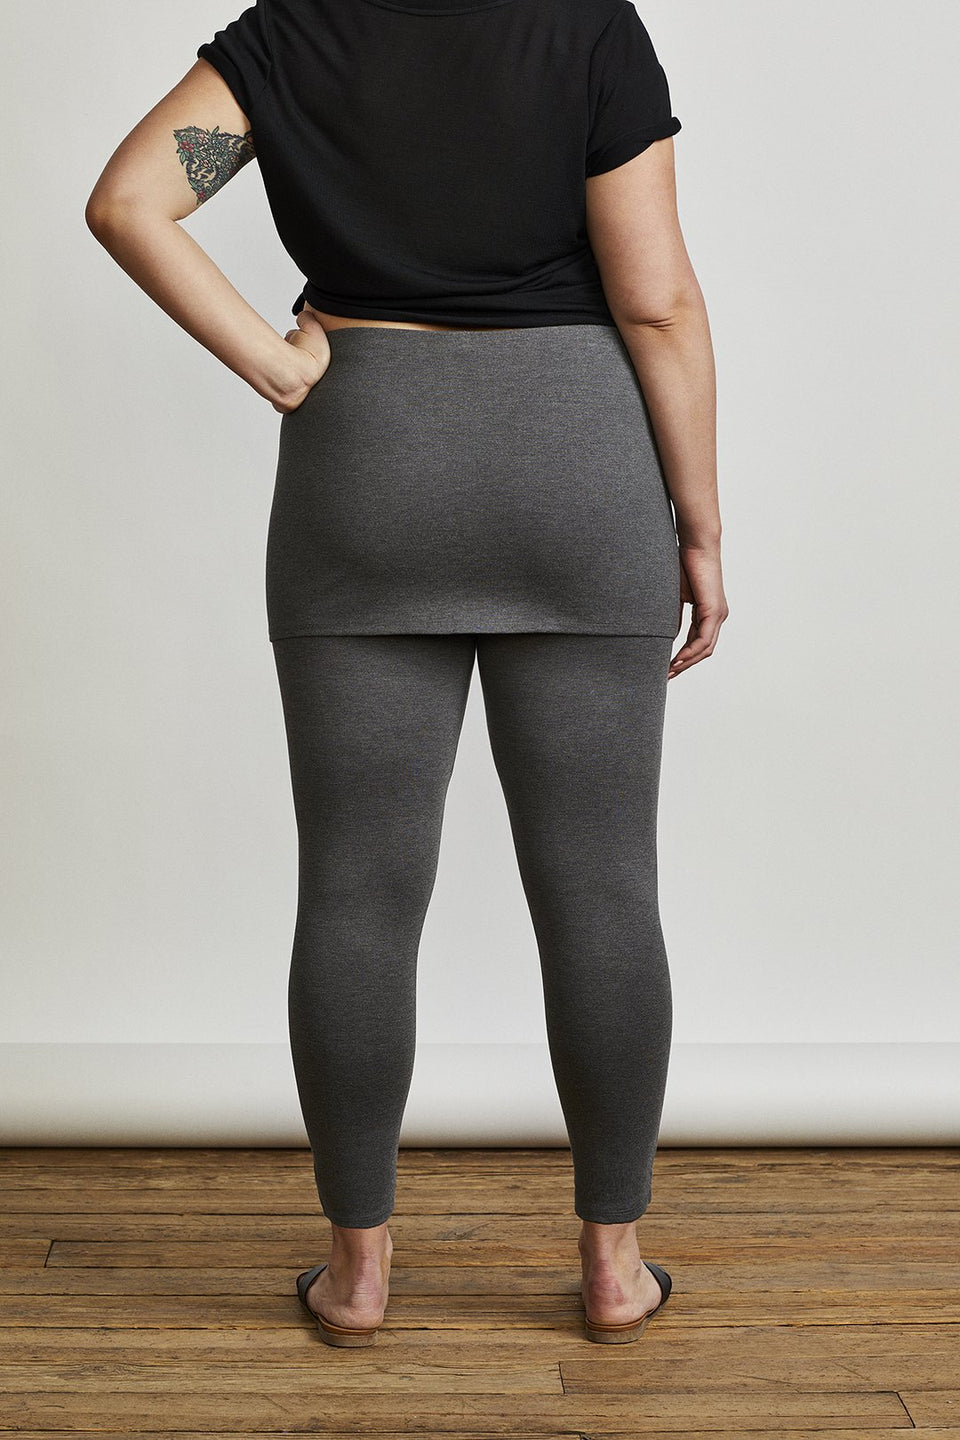 Market Skirted Legging in Charcoal Grey